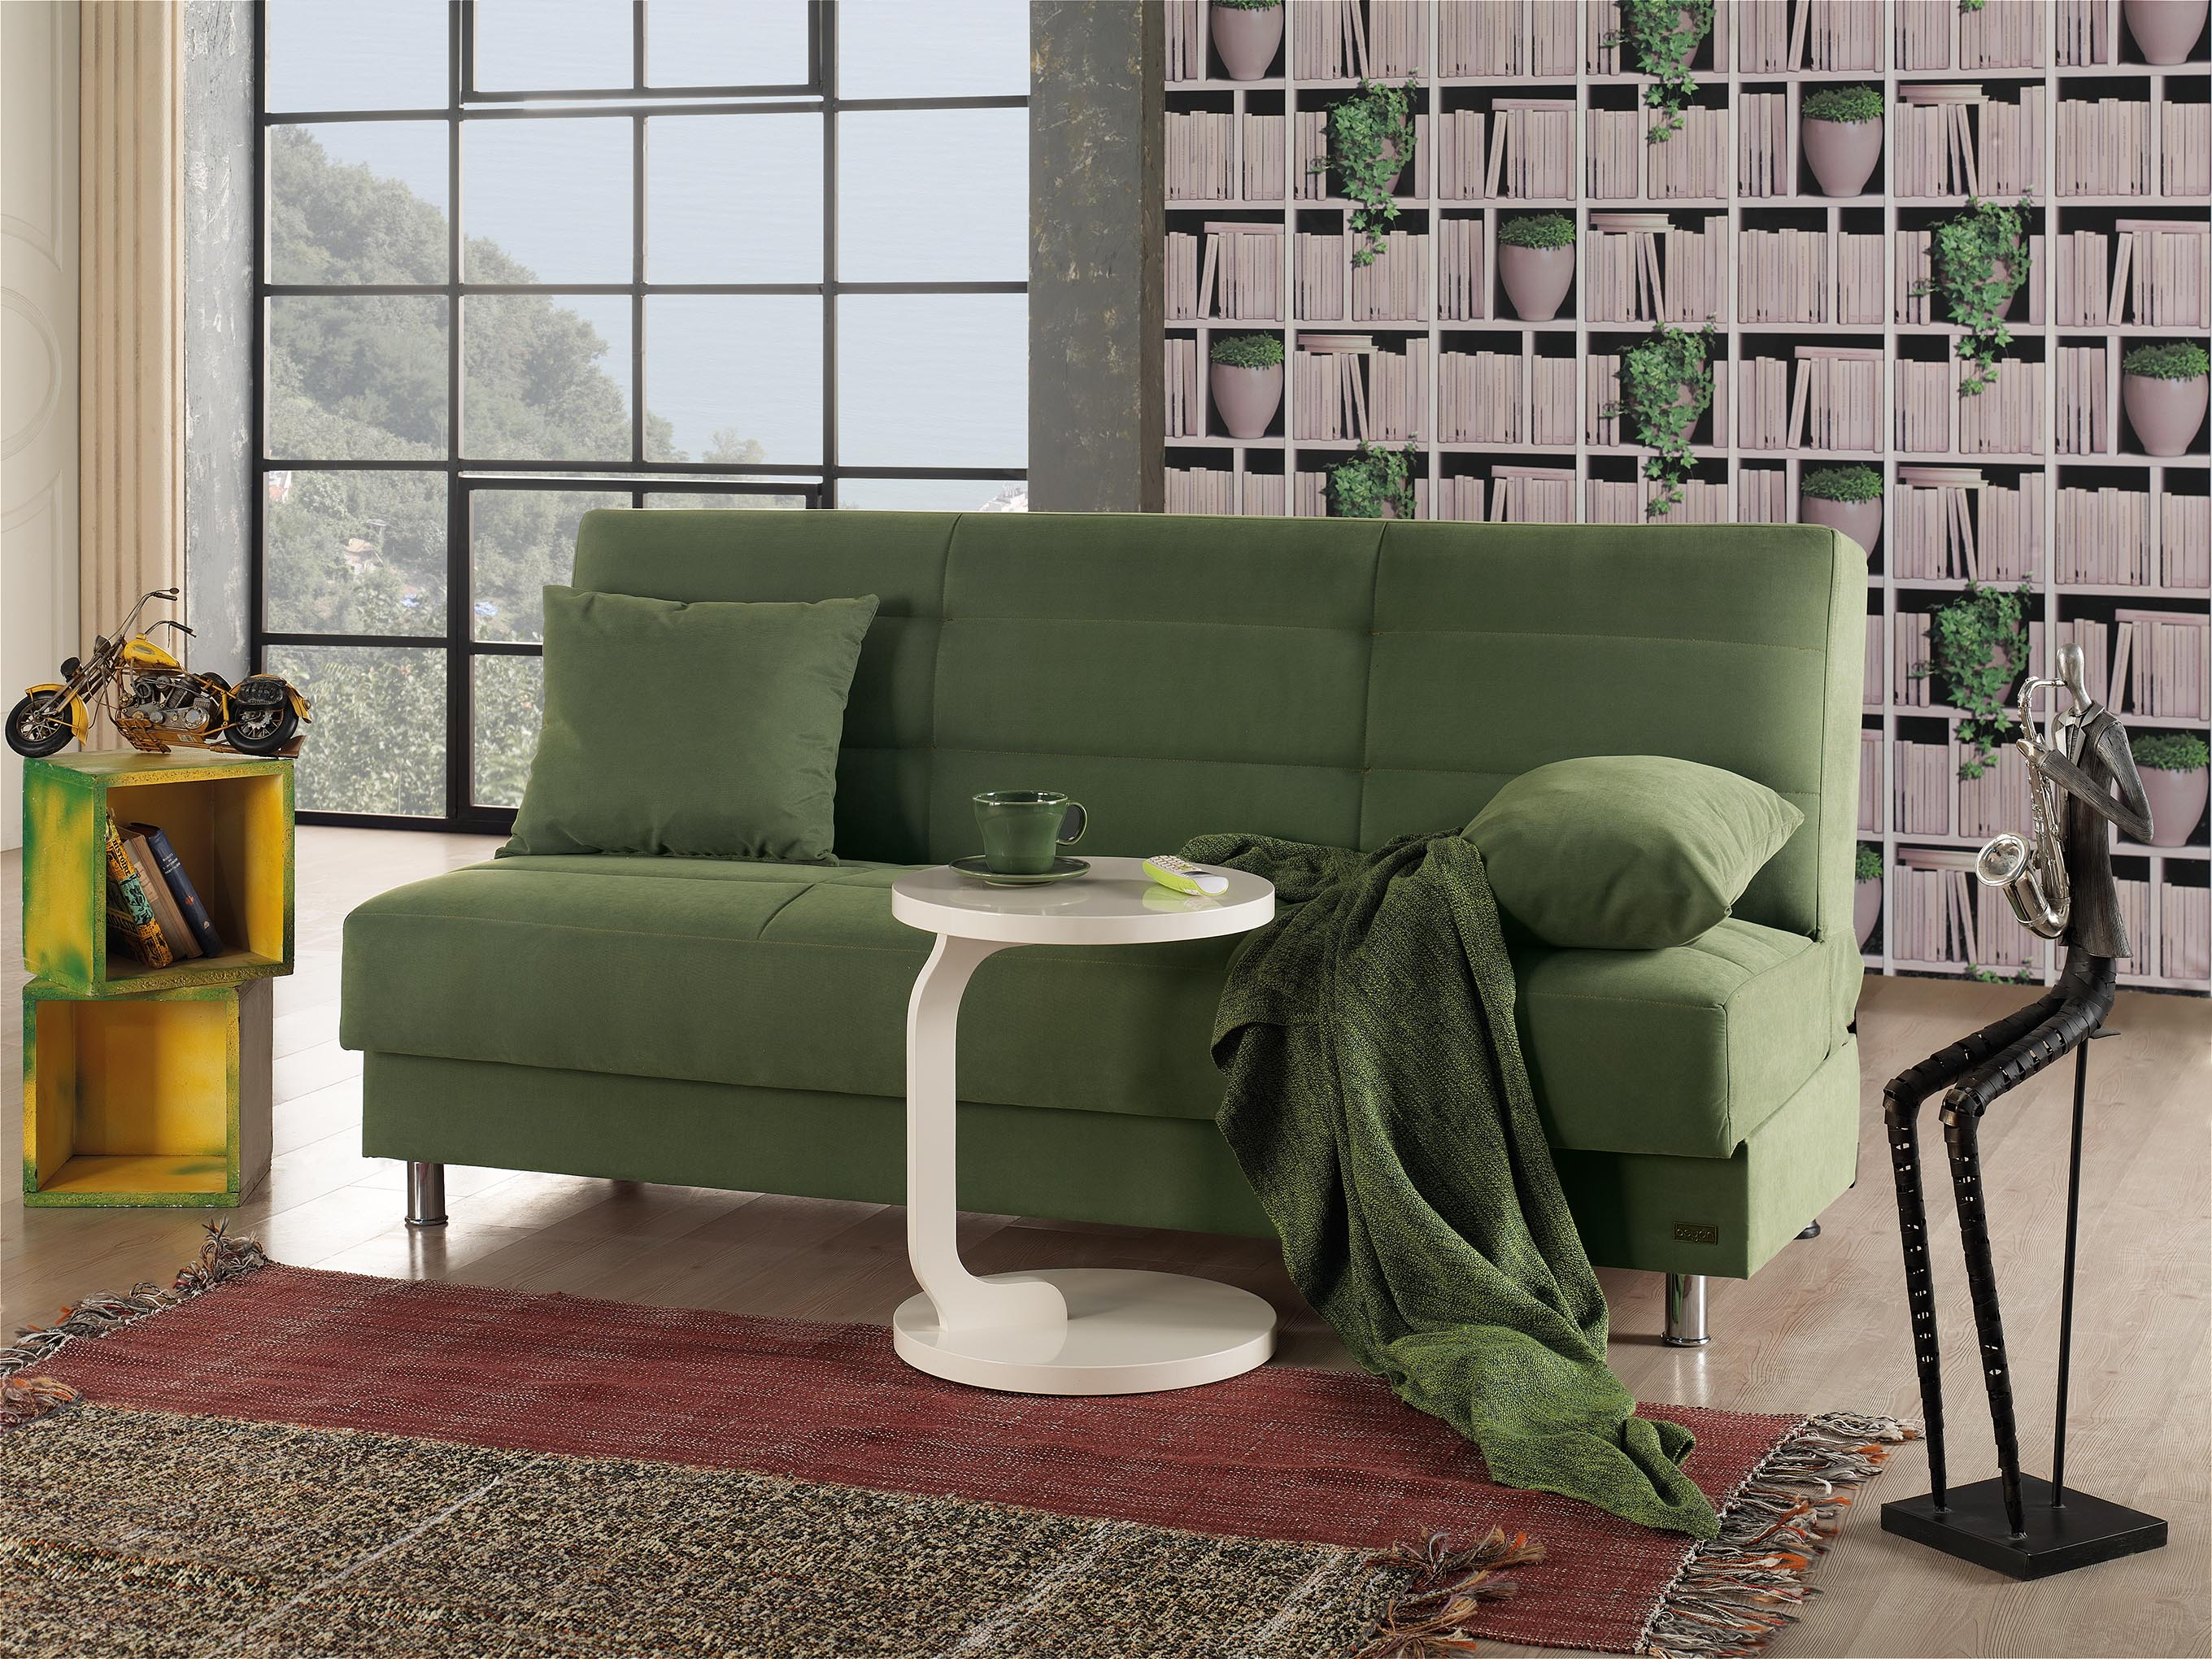 Image of: Atlantic Bedding And Furniture Annapolis